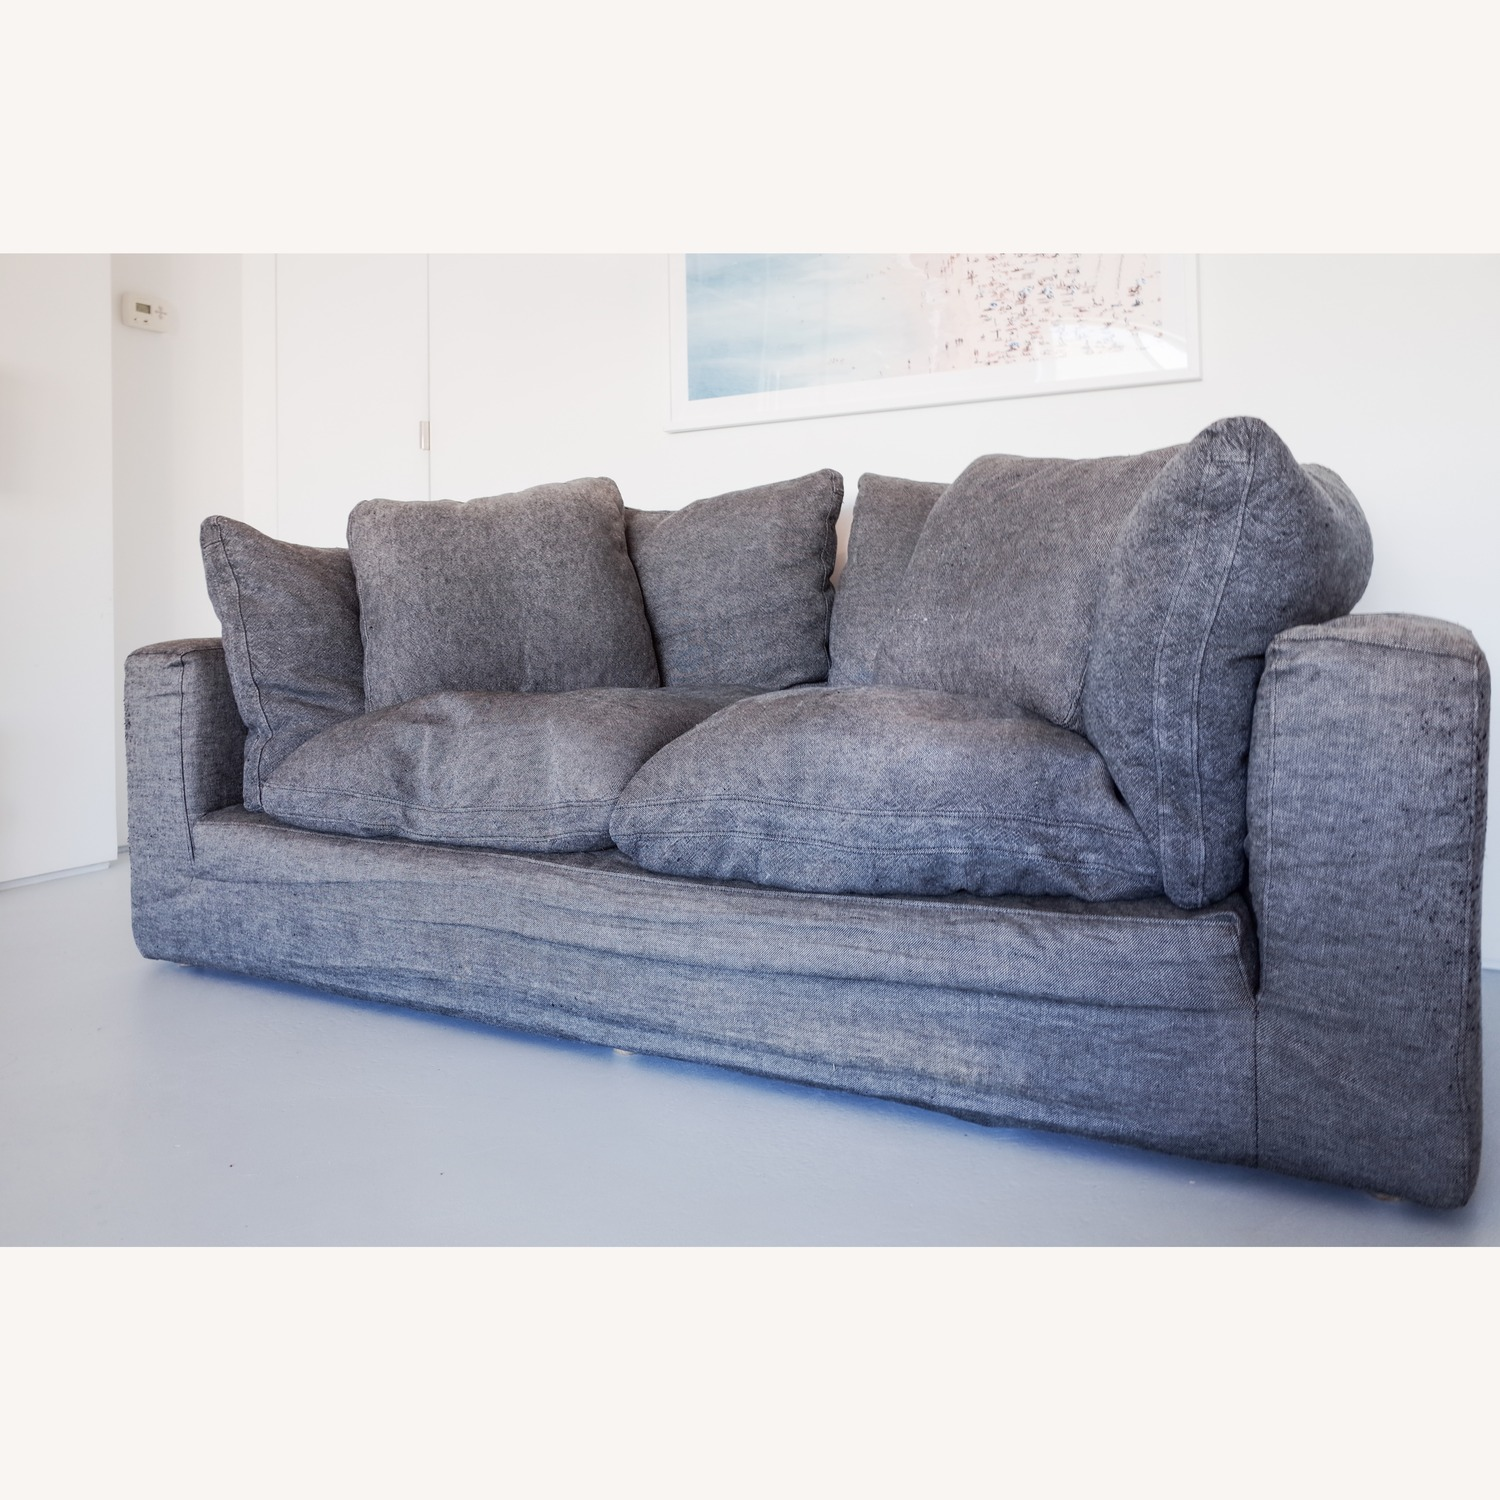 Restoration Hardware Cloud 2 Seat Cushion Sofa - image-2